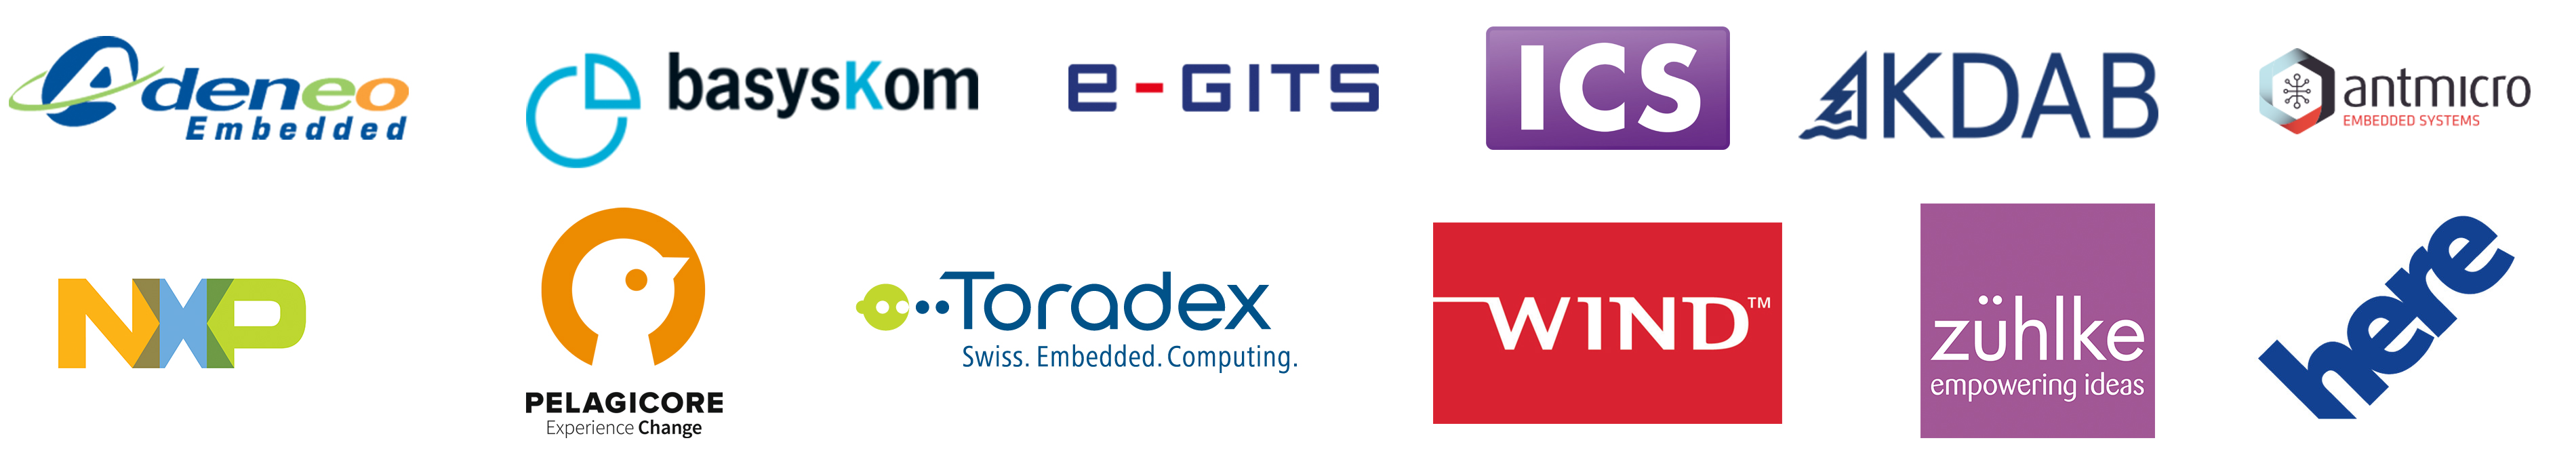 Qt Embedded World Demo Partners